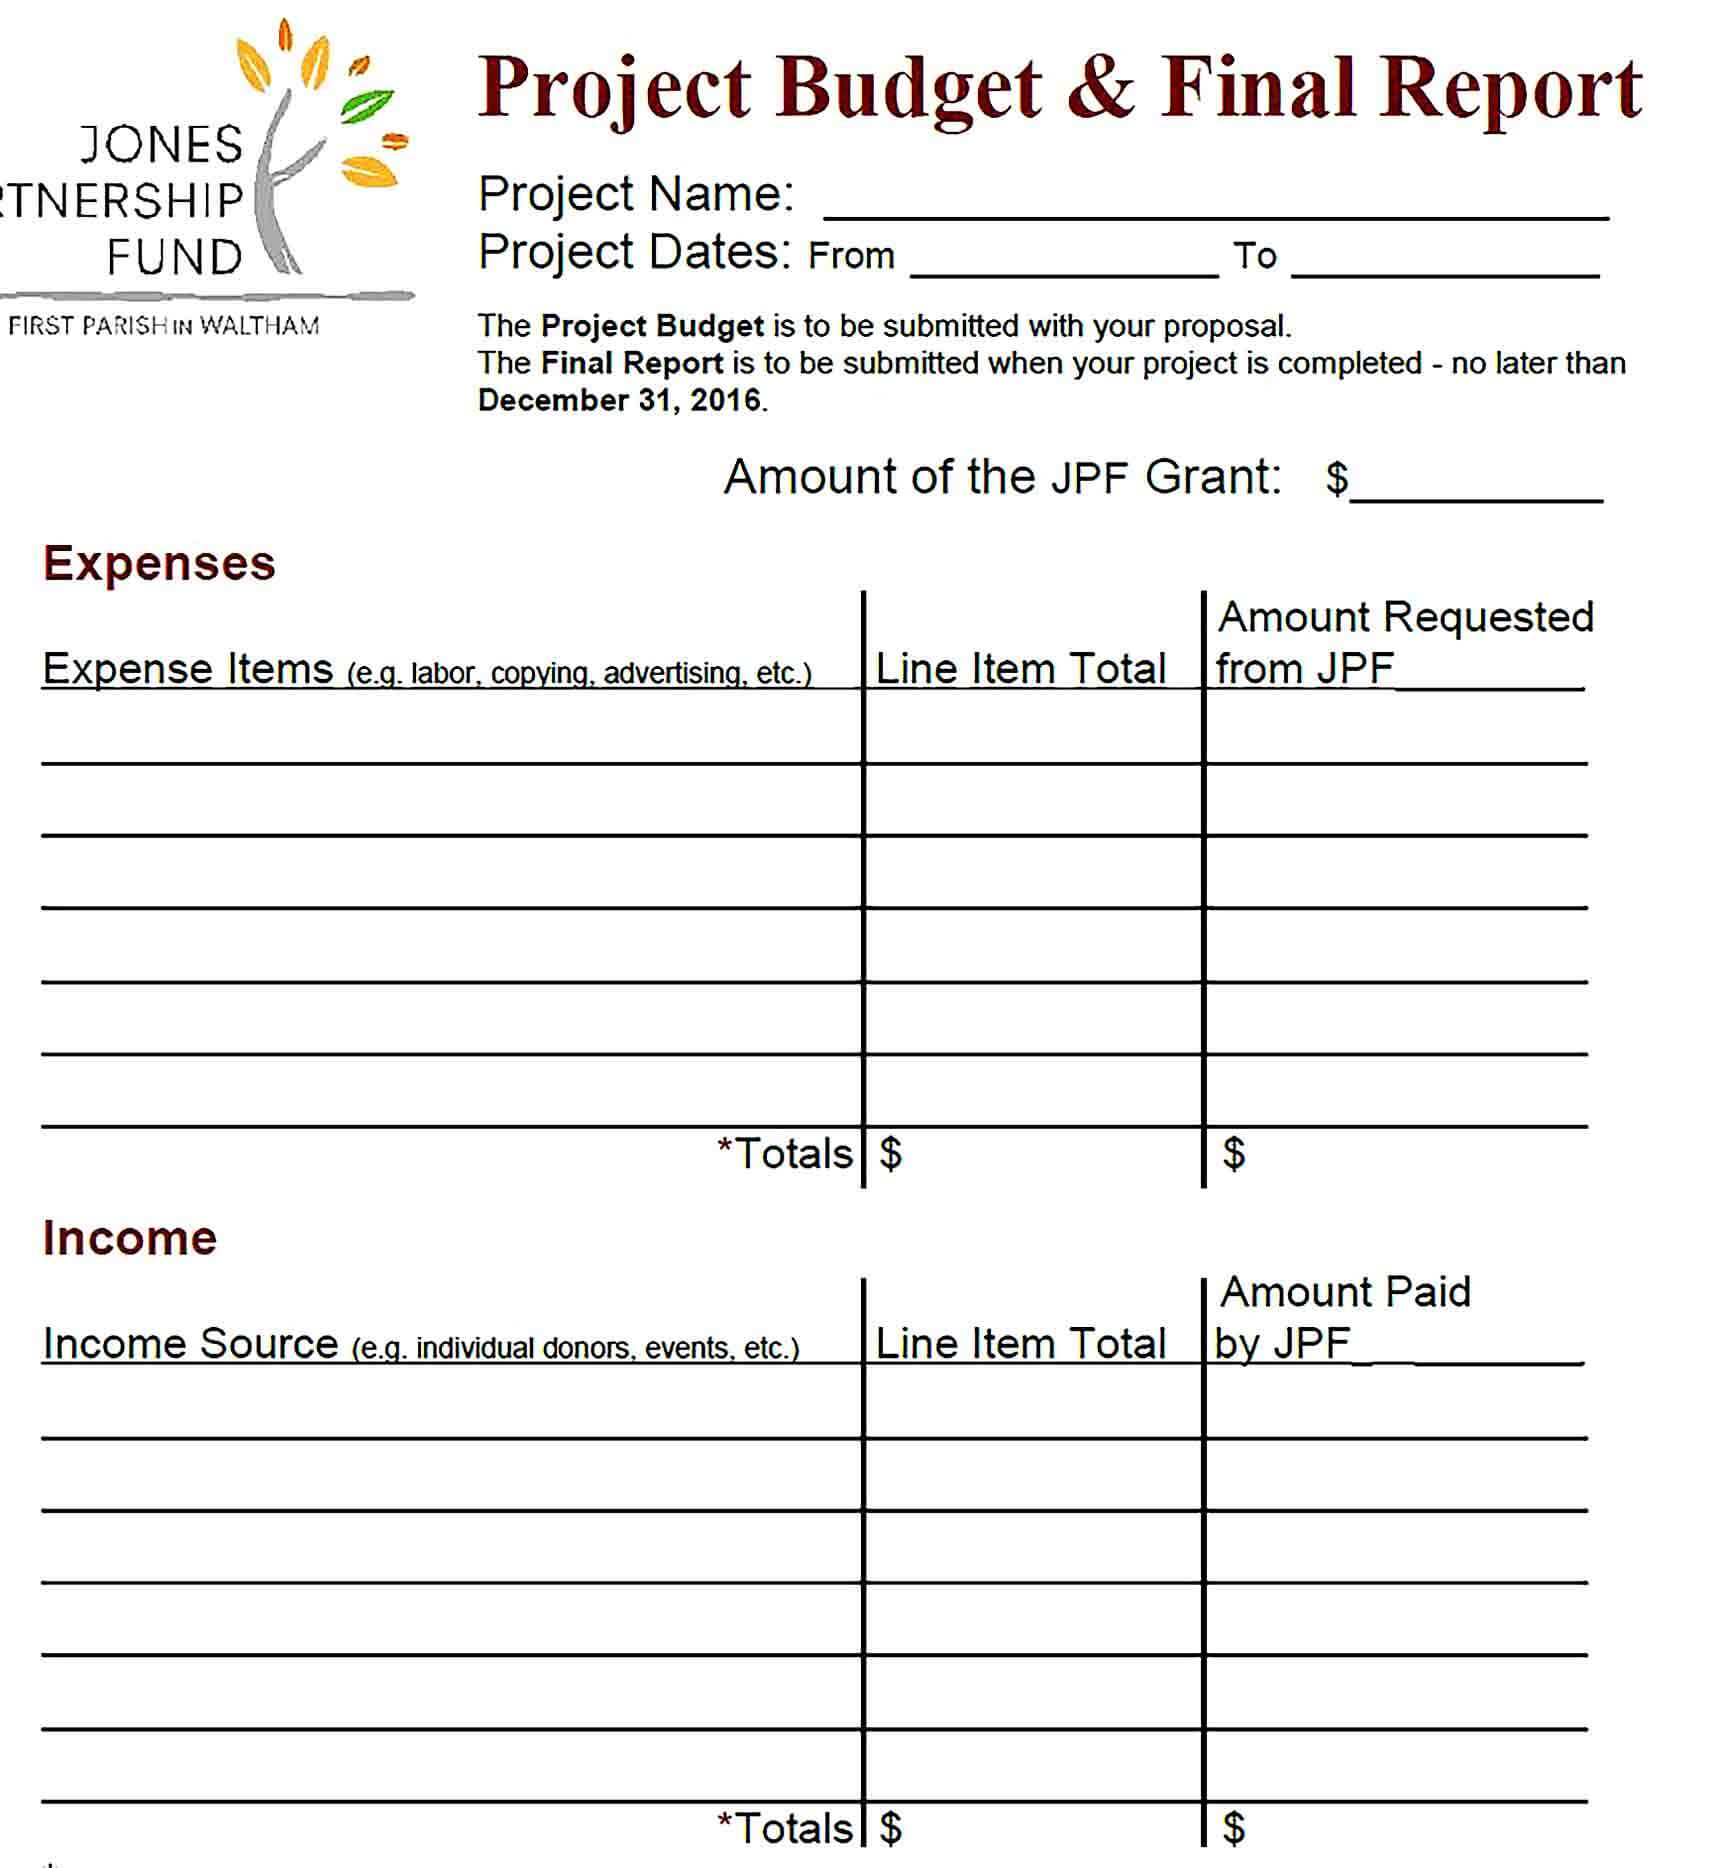 Sample Final Project Budget Report